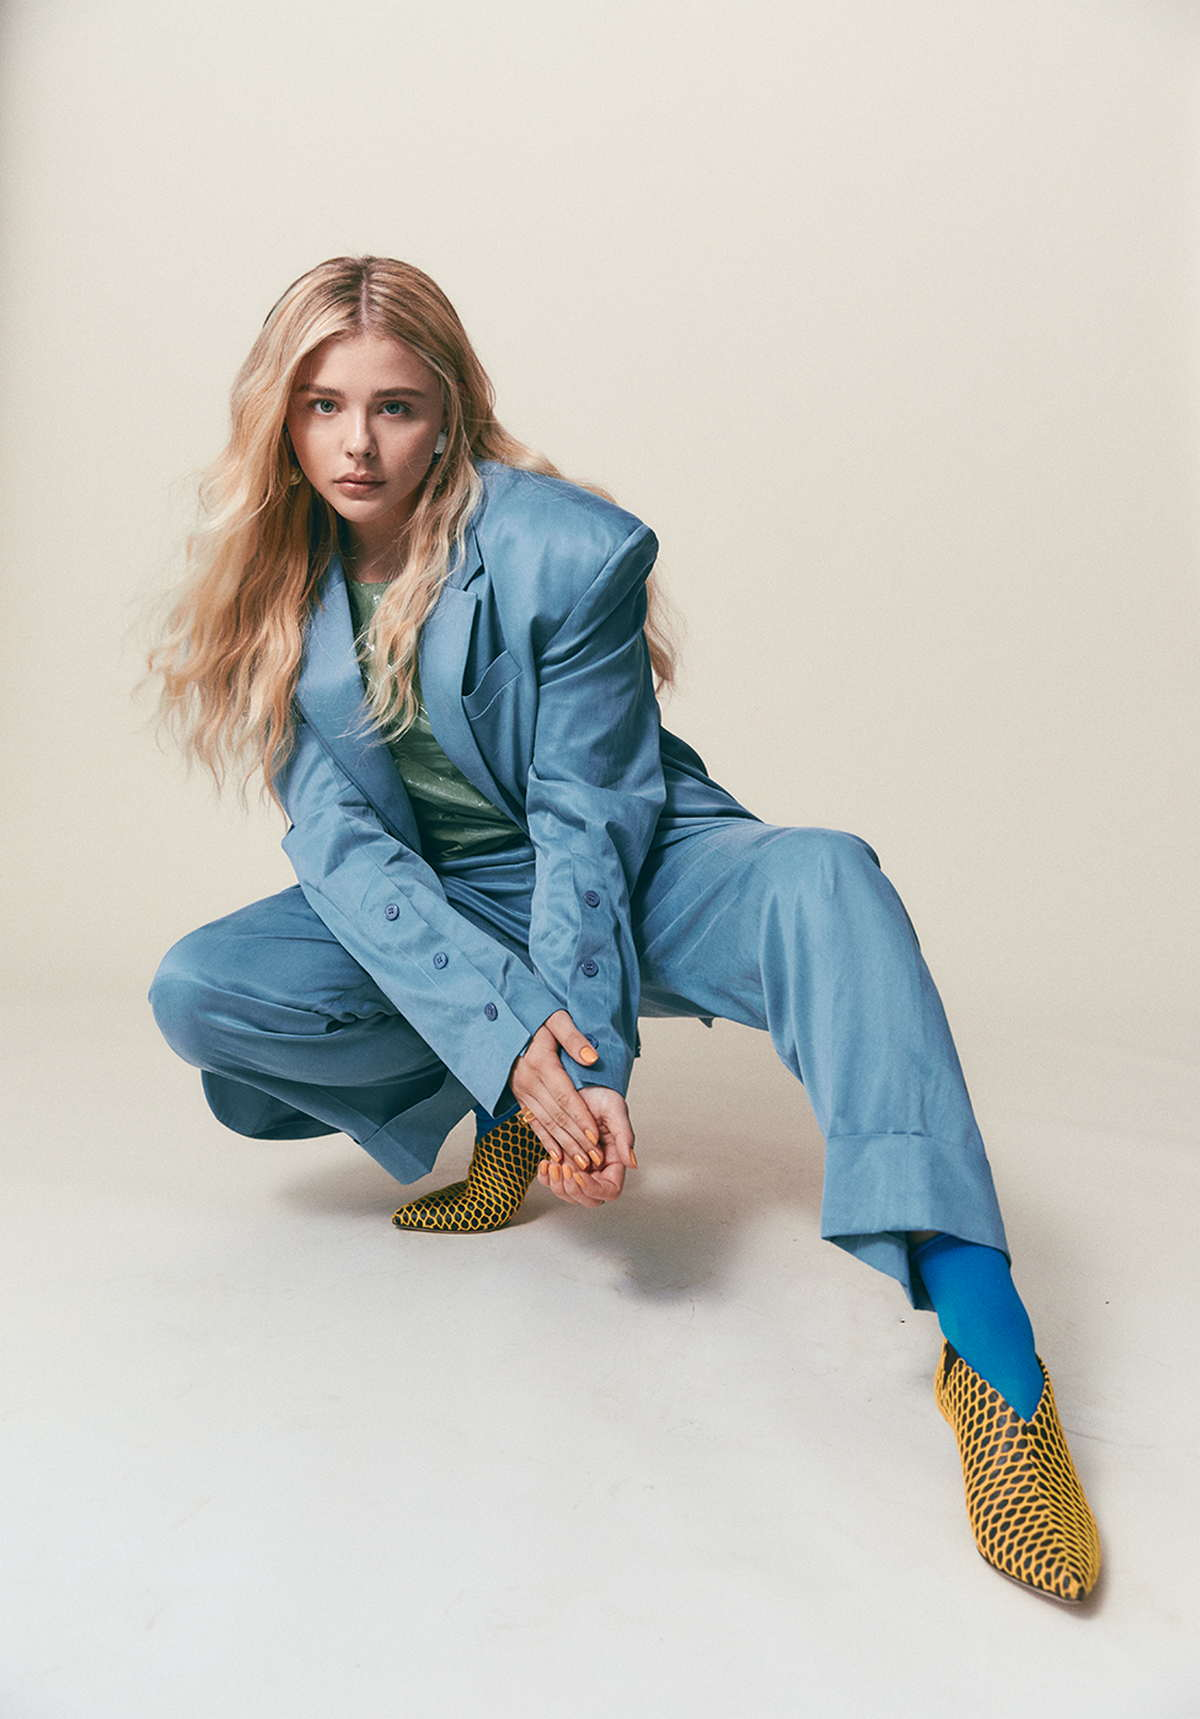 Chloë-Grace-Moretz-Photographed-by-Harper-Smith-for-Who-Wat-Wear-201800009.jpg